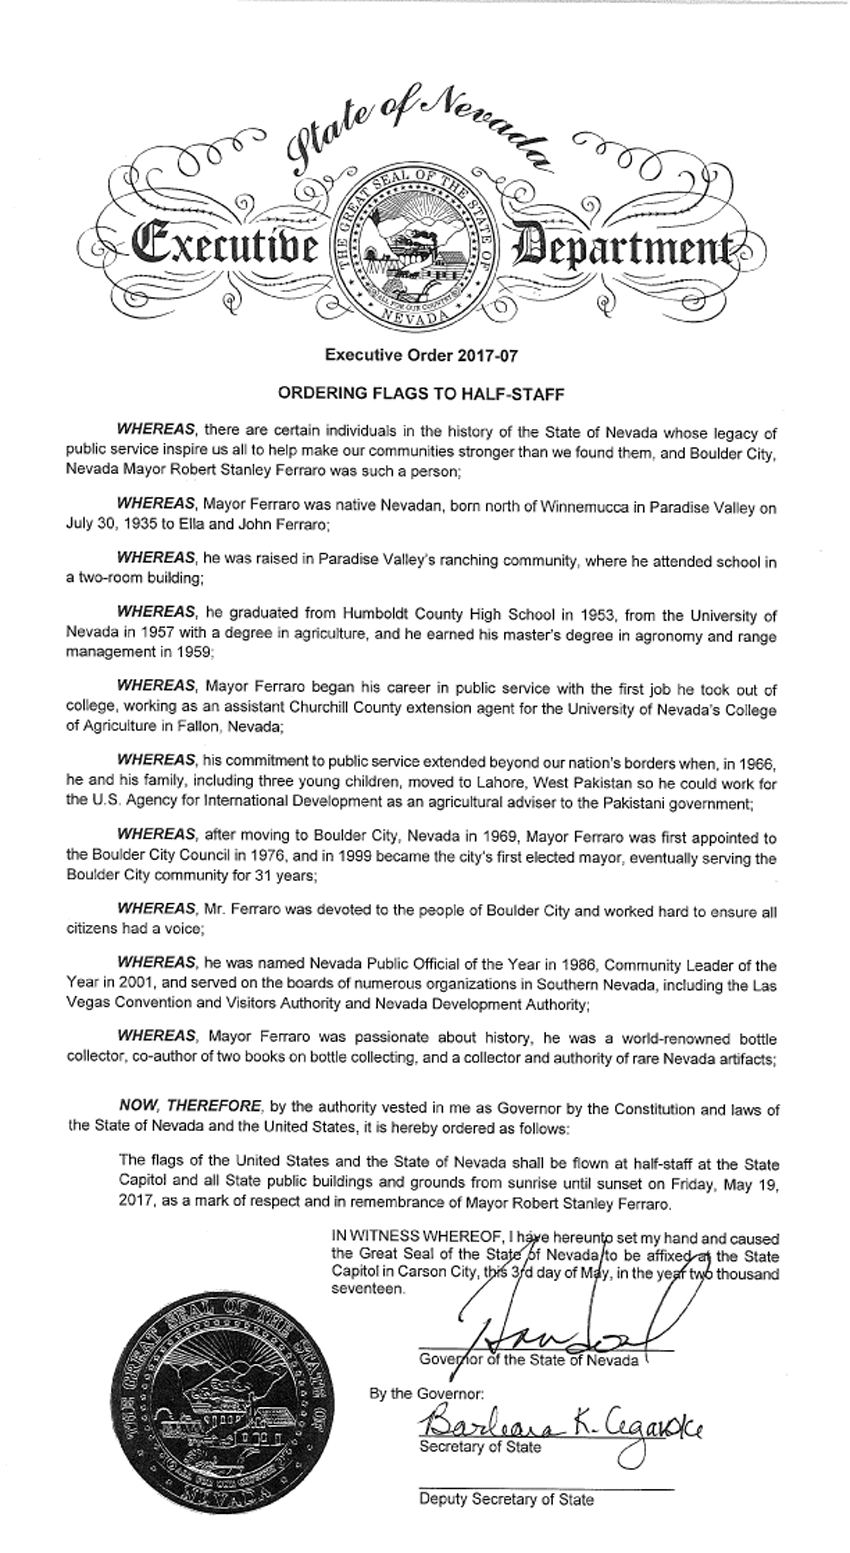 EO-2017-07_Ordering-flags-to-half-staff-in-honor-of-Boulder-City-NV-Mayor-Robert-Ferraro.png